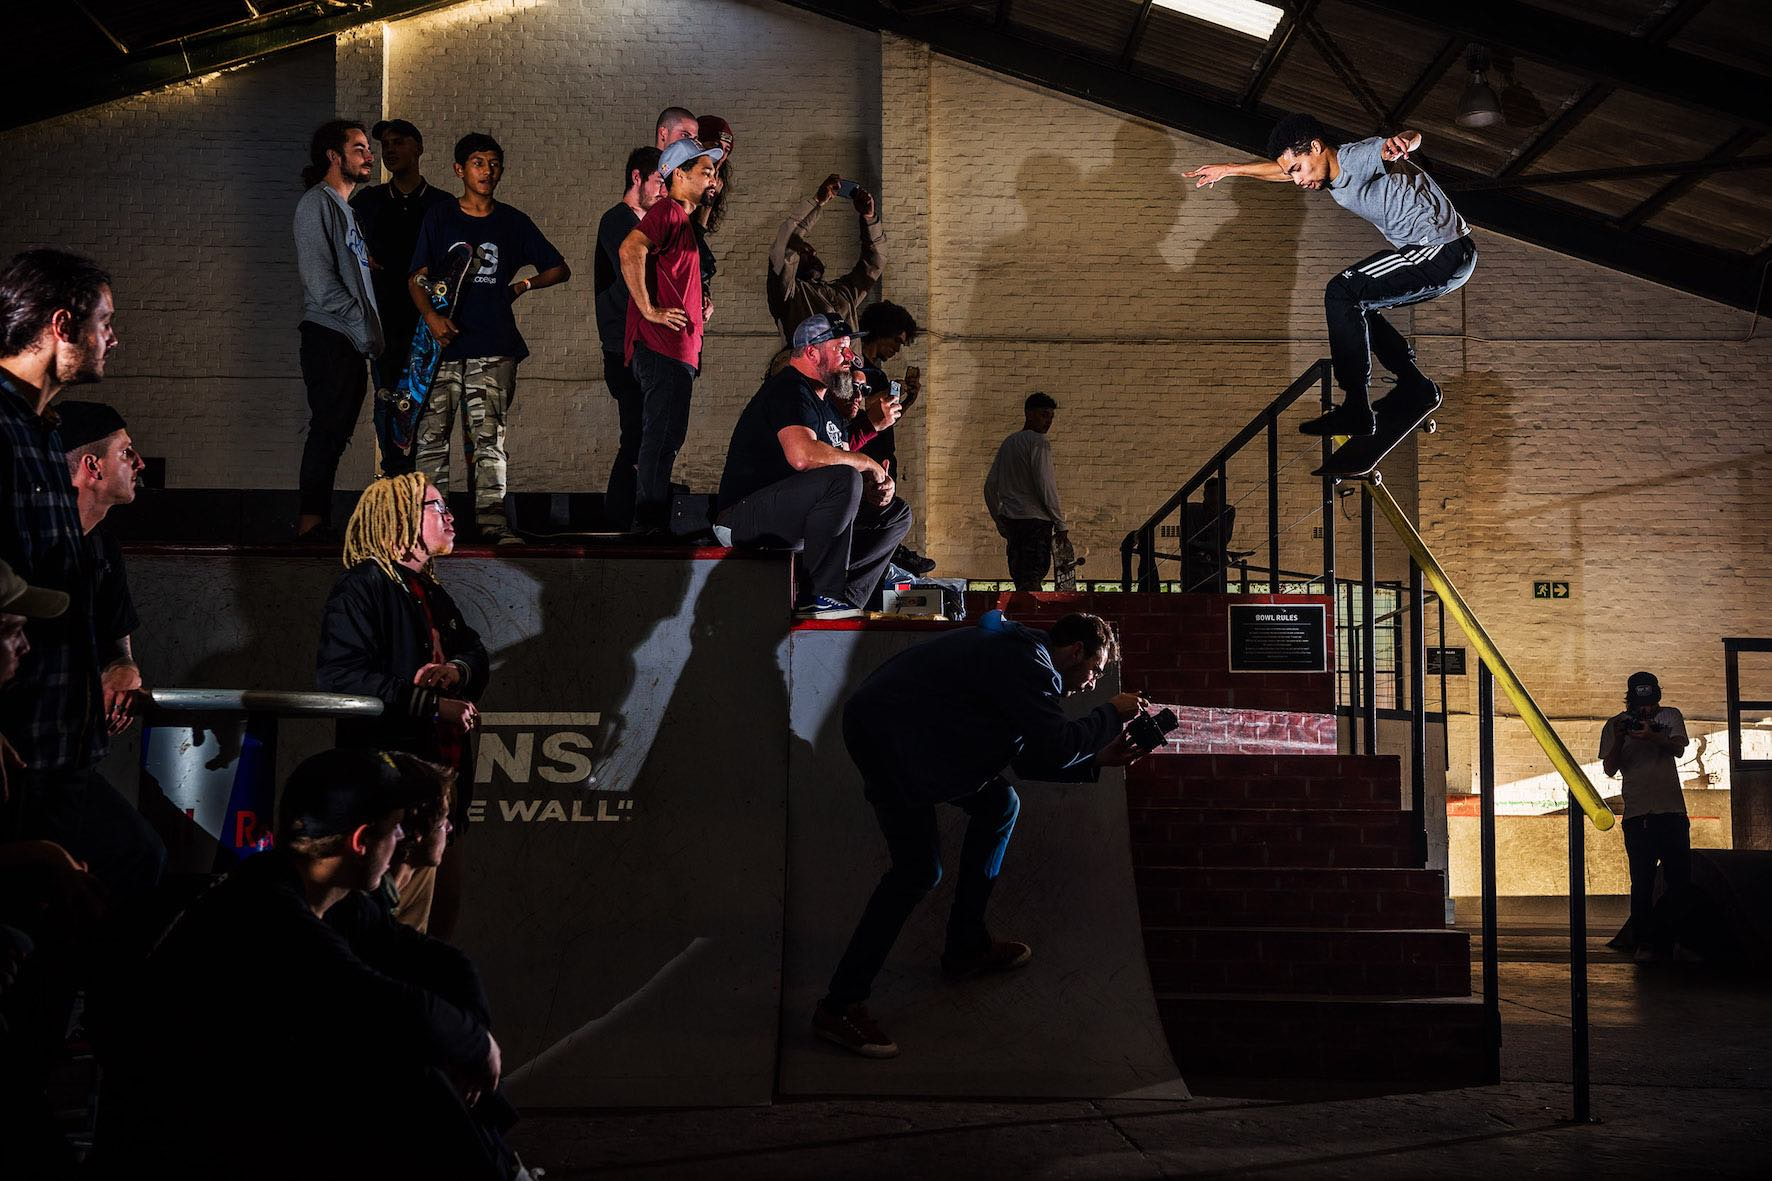 Allan Adams winning the Best Trick contest a The Shred Winter Jam skate contest